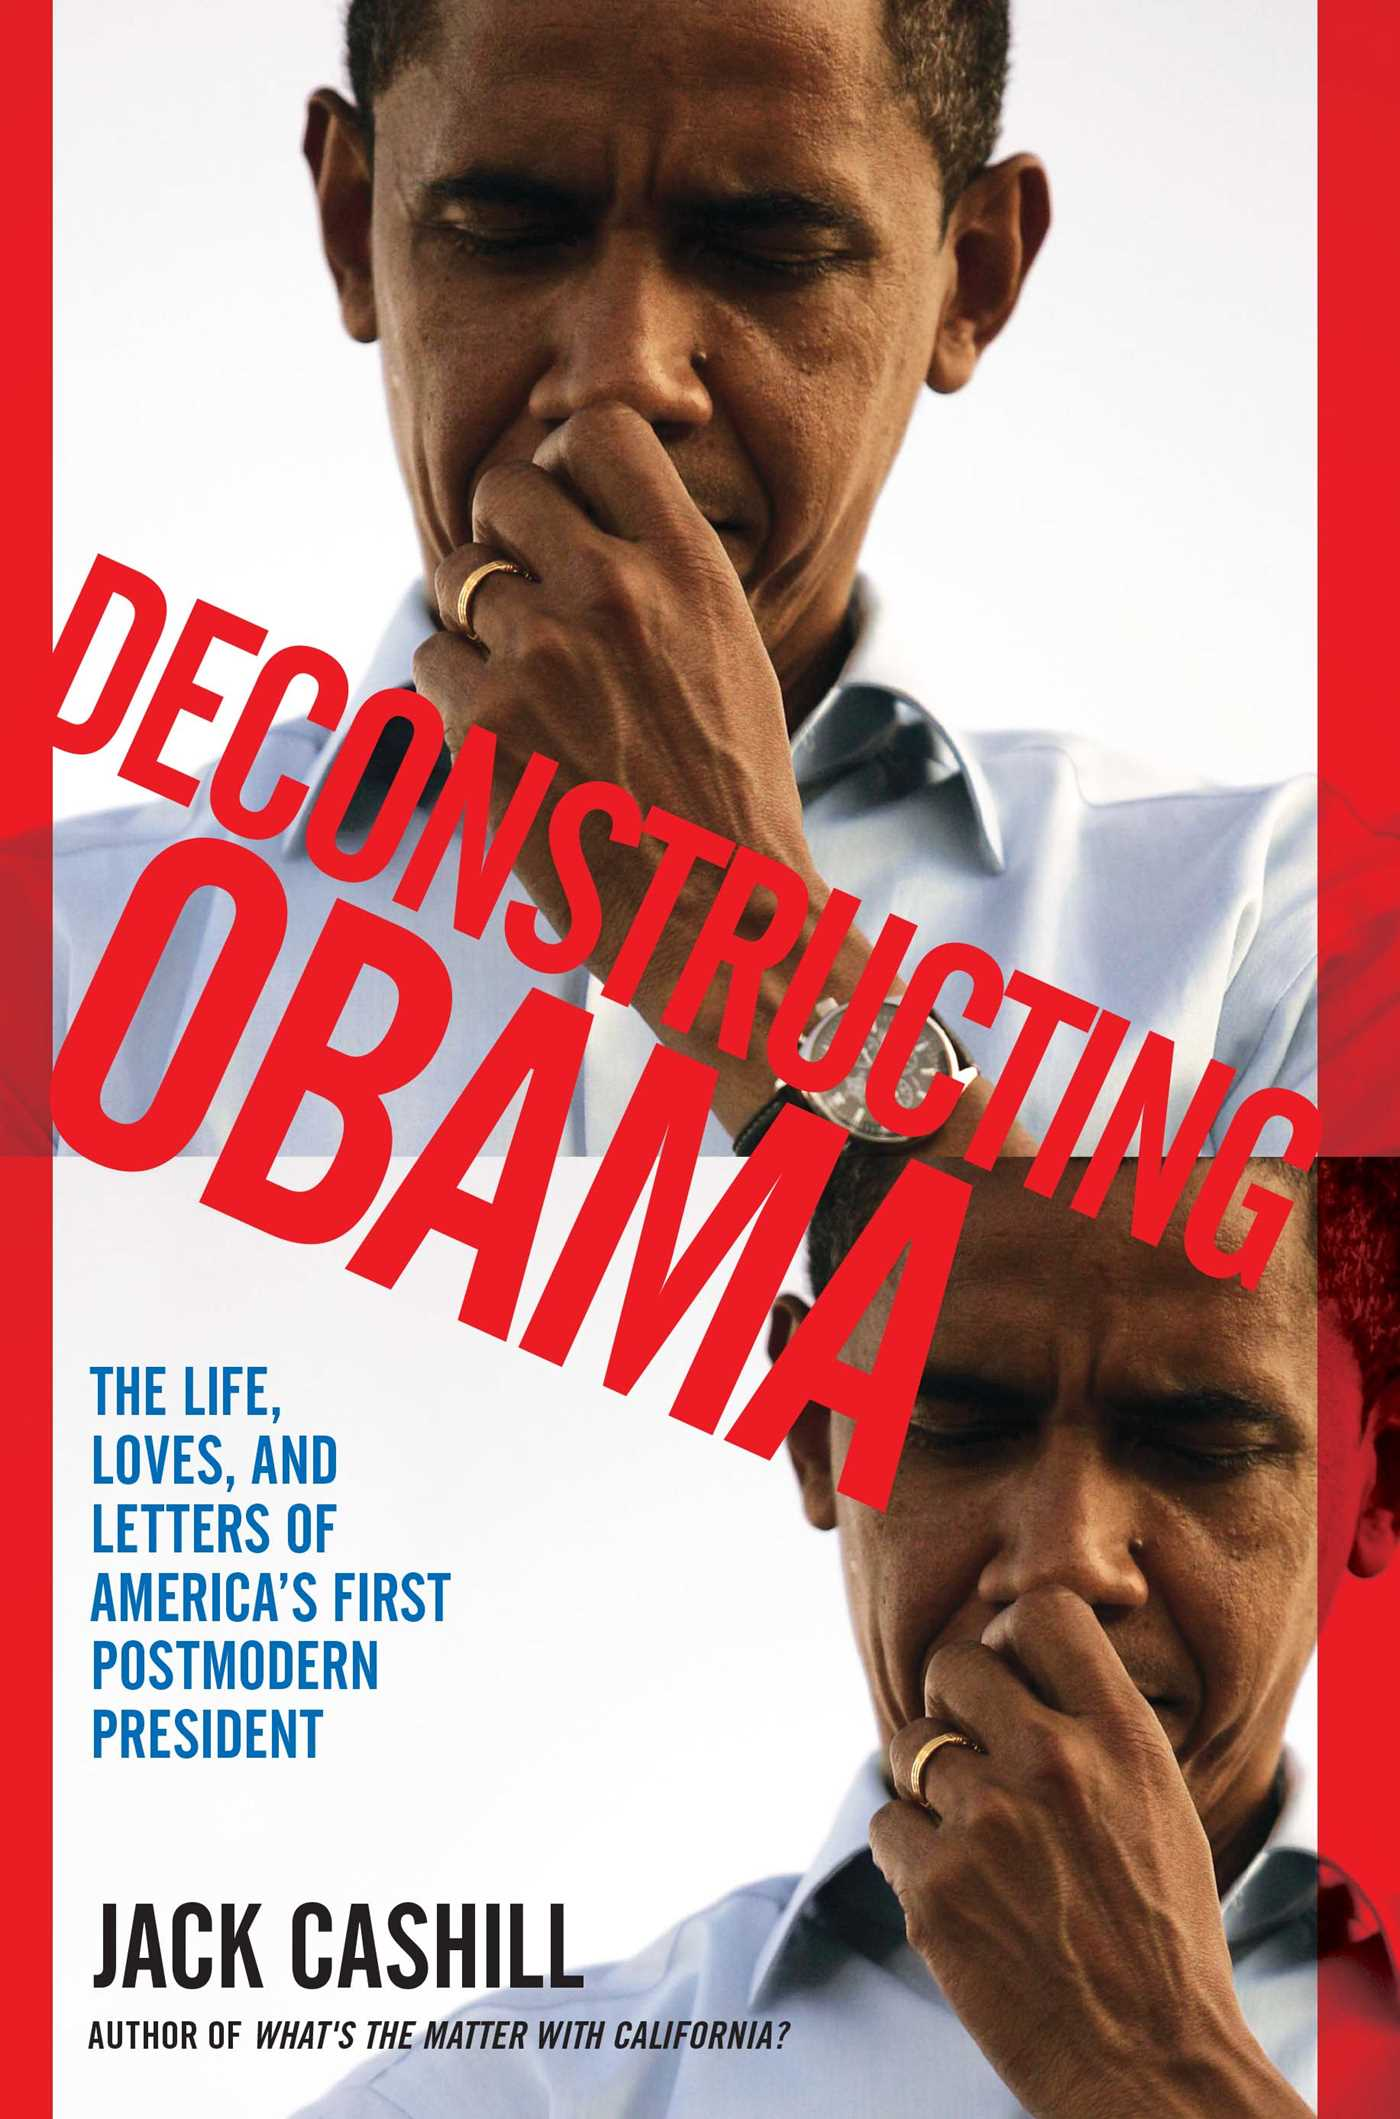 Deconstructing obama 9781451611120 hr